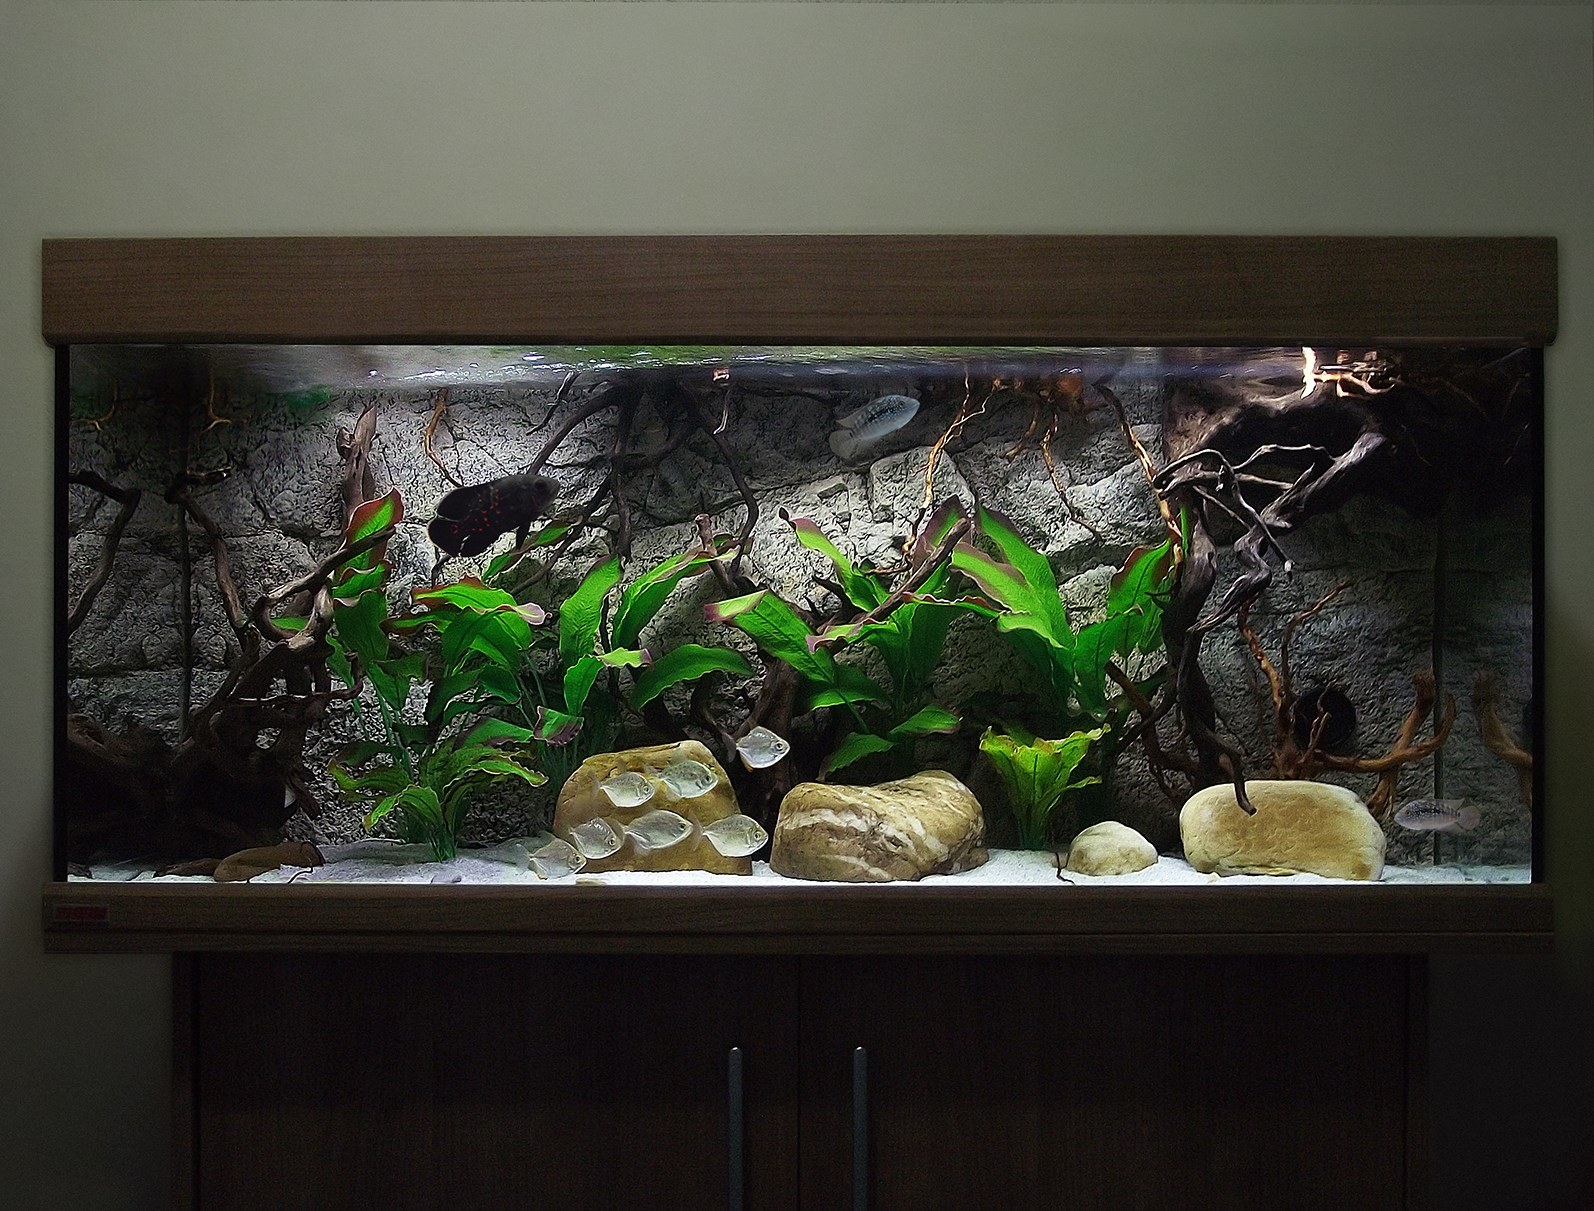 Sumatra 120x50 cm arstone aquarium backgrounds for Aquarium stone decoration